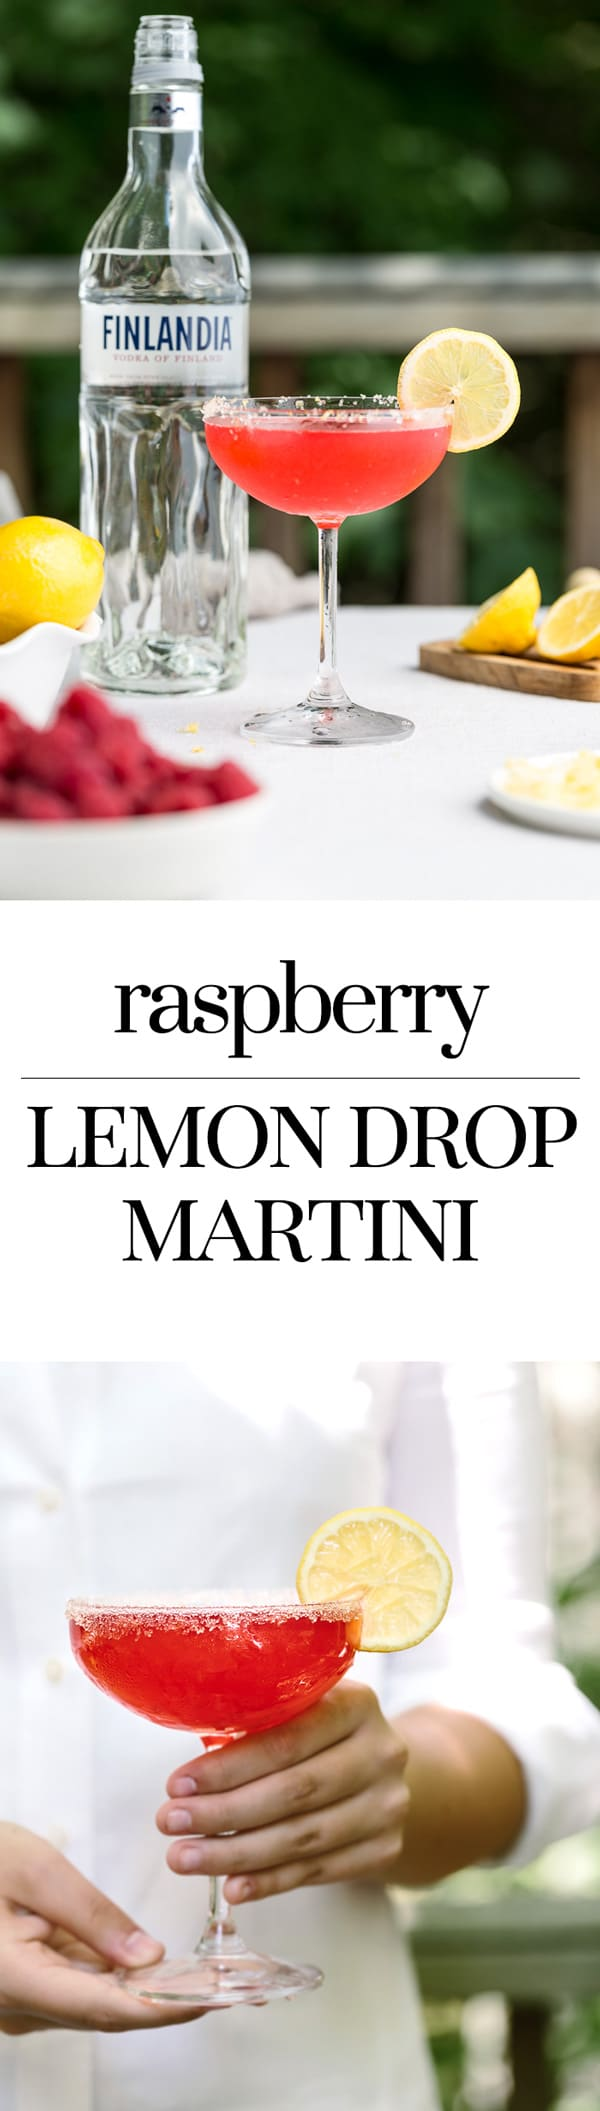 Raspberry Lemon Drop Martini: A refreshing cocktail recipe made with Finlandia vodka. #sponsored